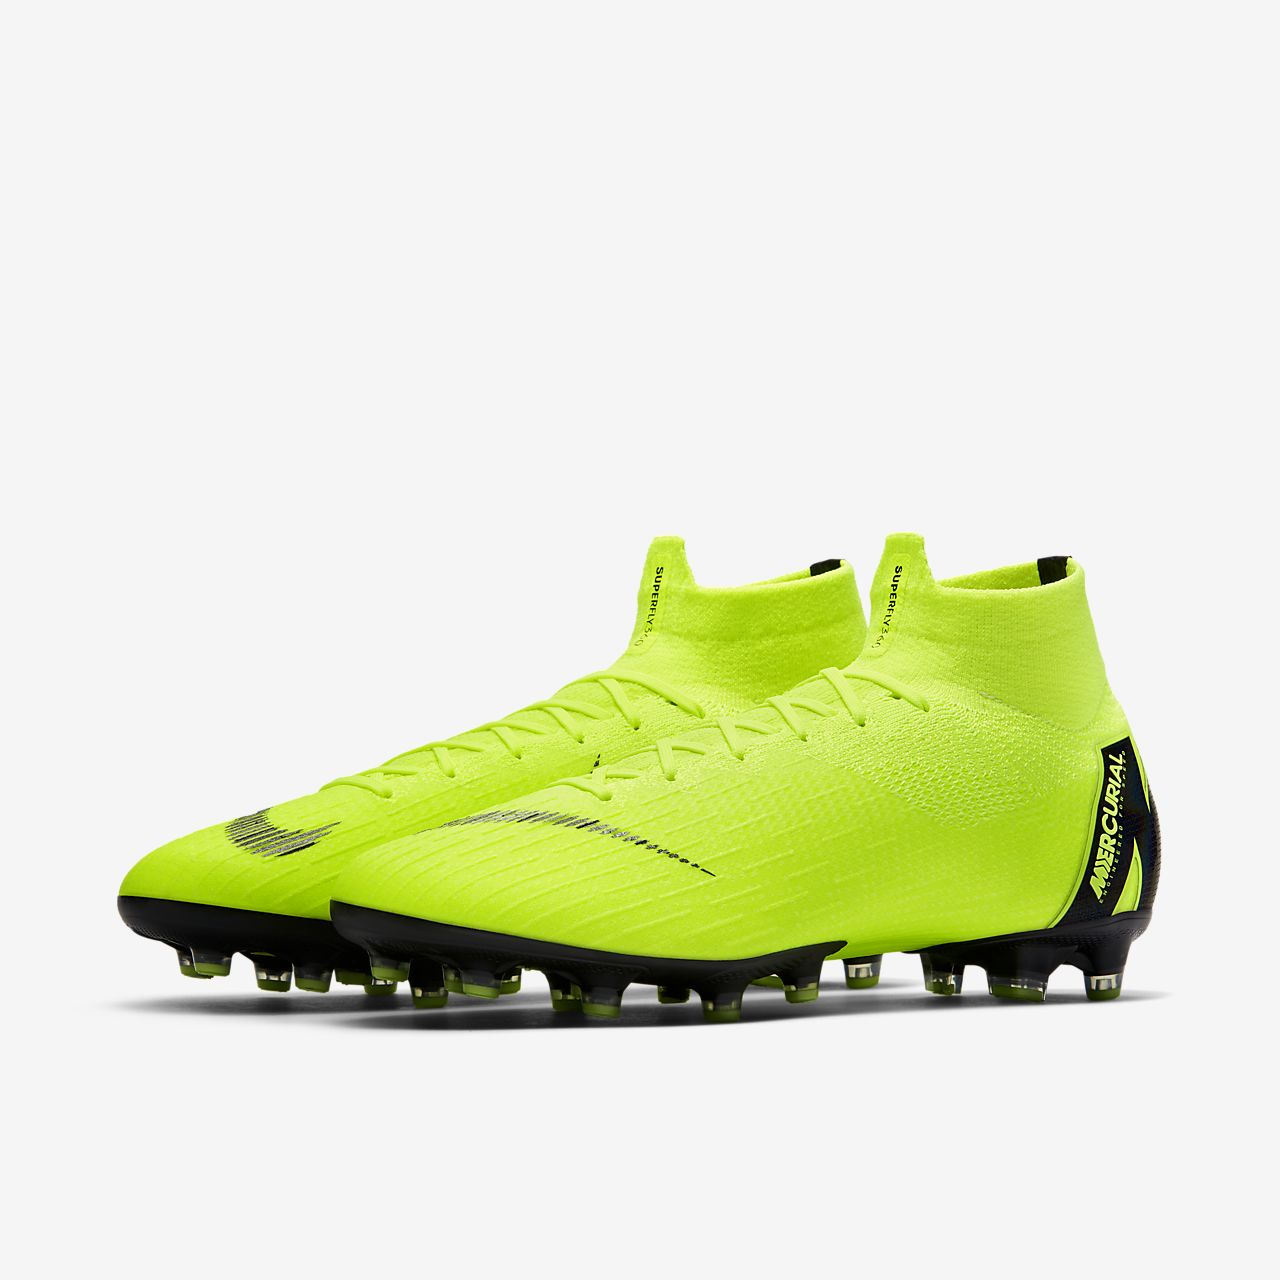 a7475843703a ... Nike Mercurial Superfly 360 Elite SG-PRO Anti-Clog Soft-Ground Football  Boot